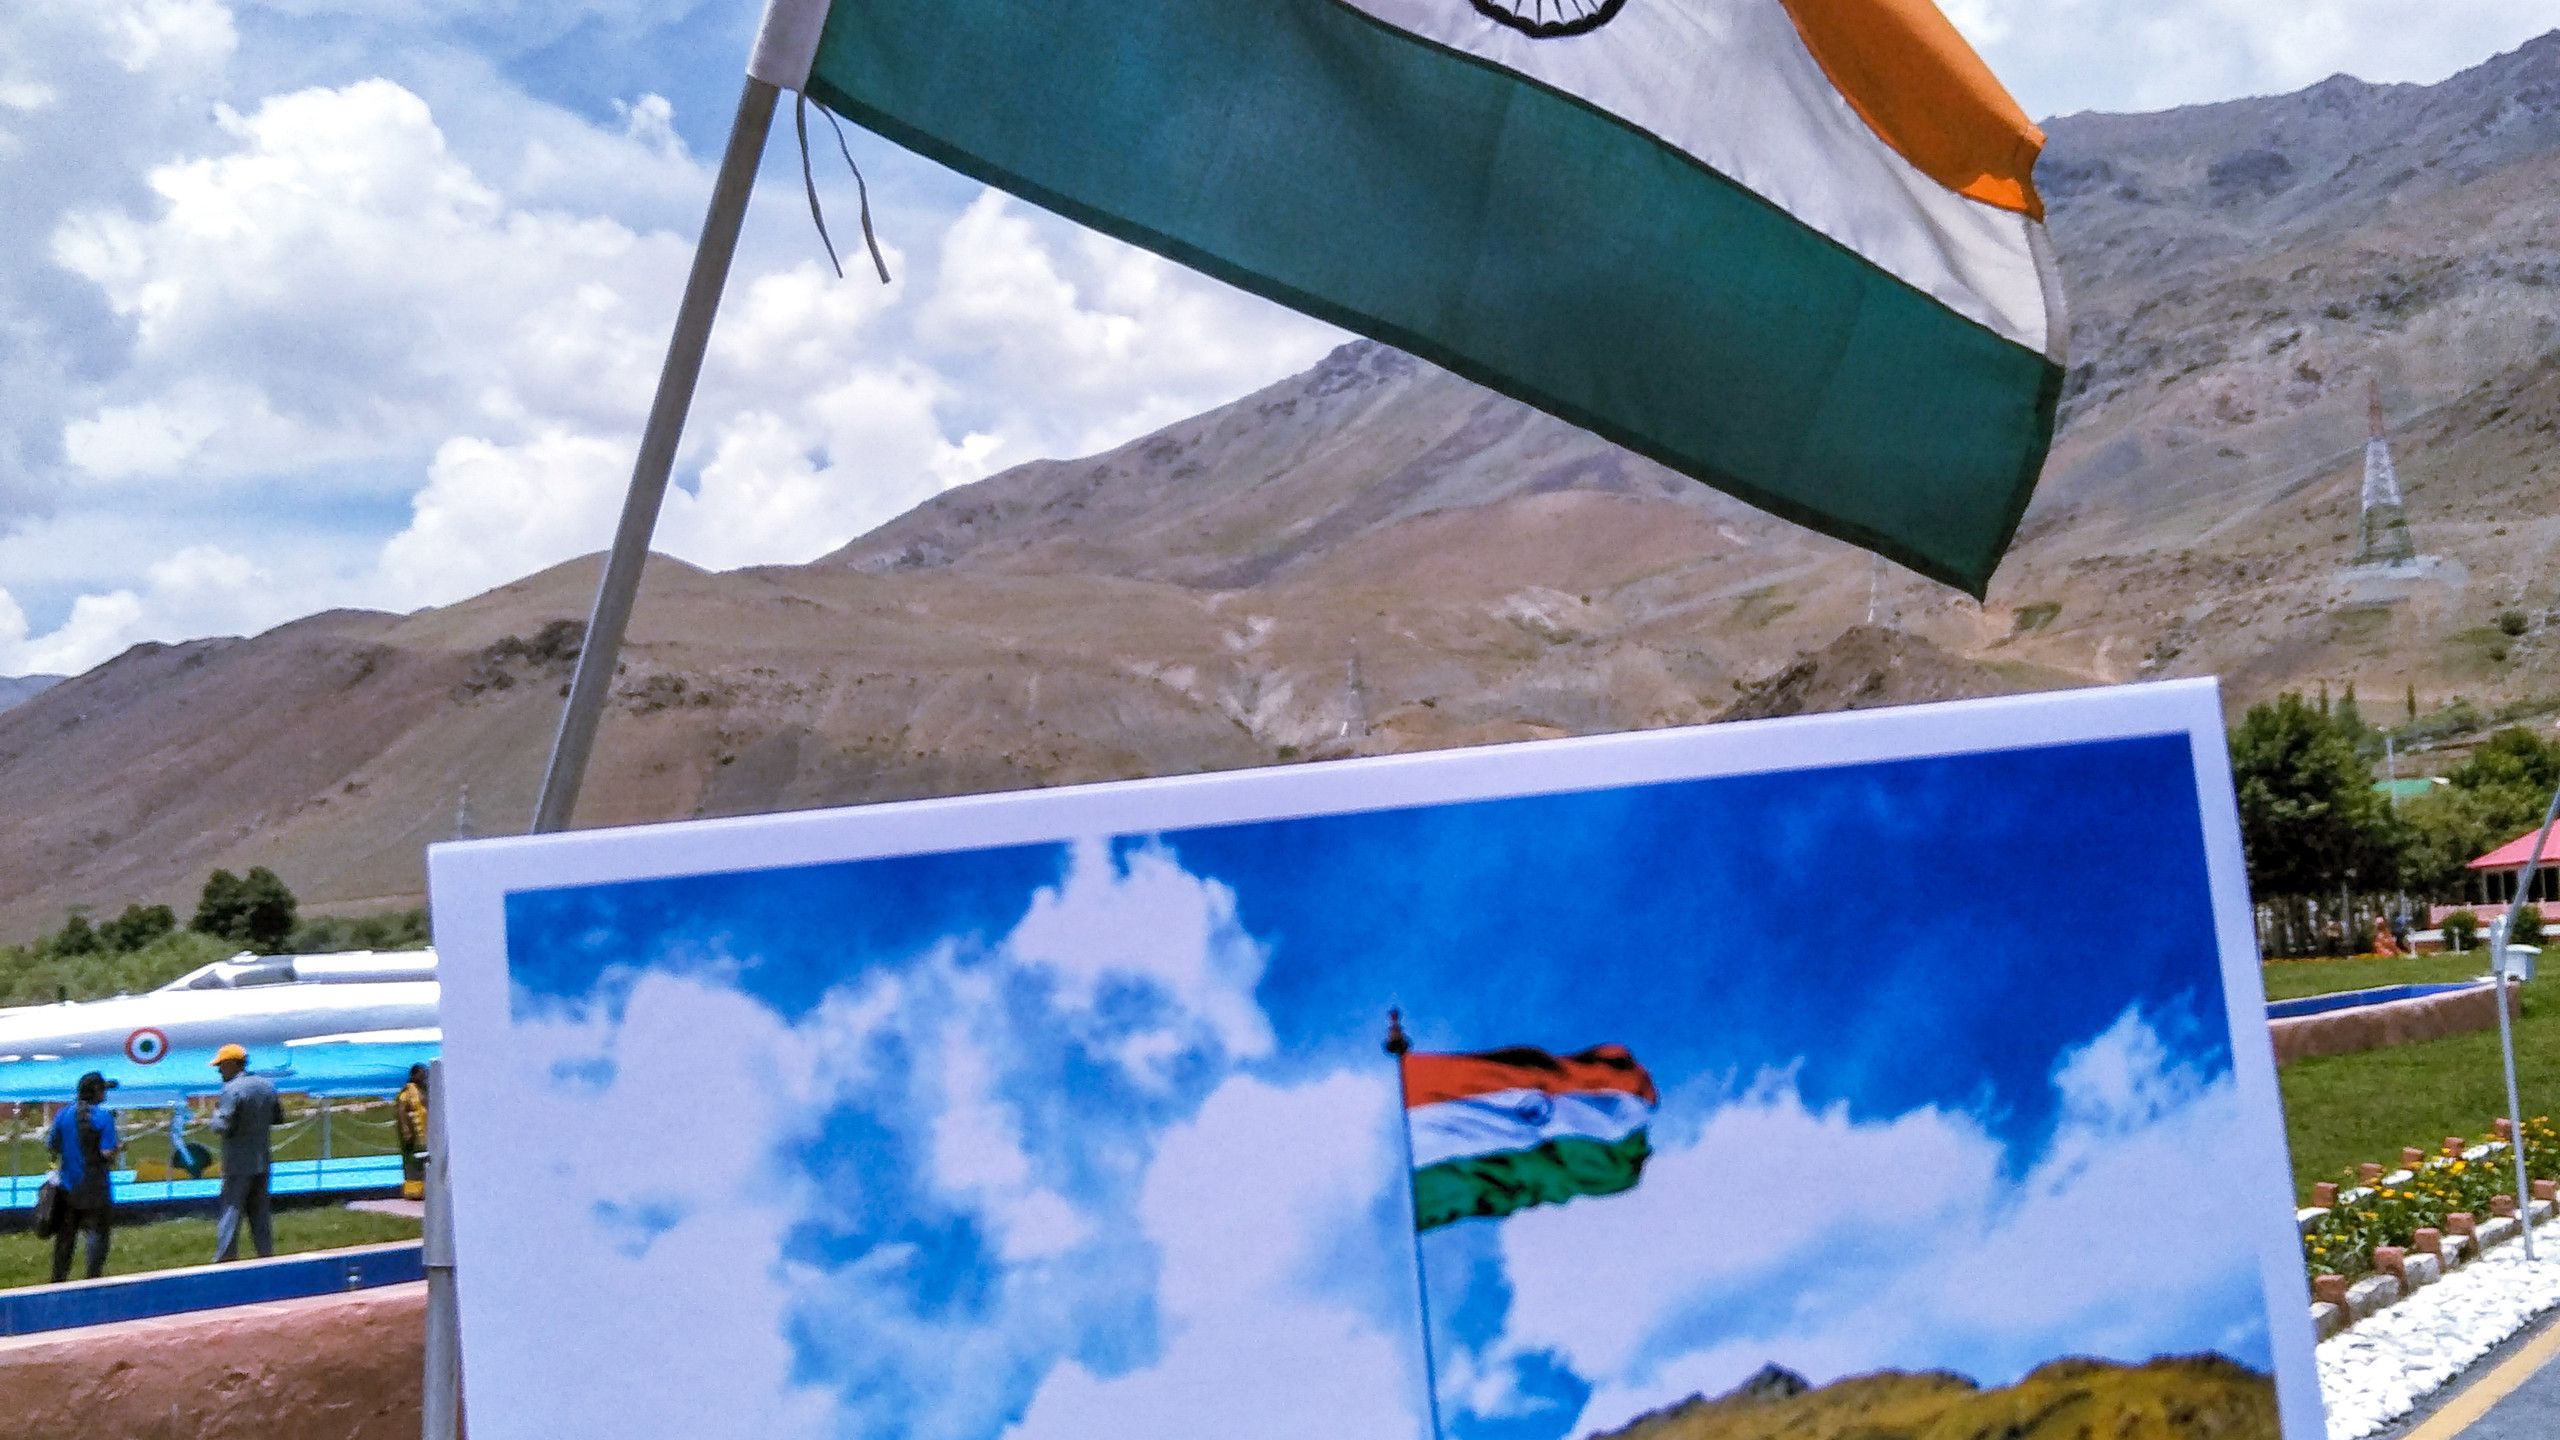 Postcard from Kargil